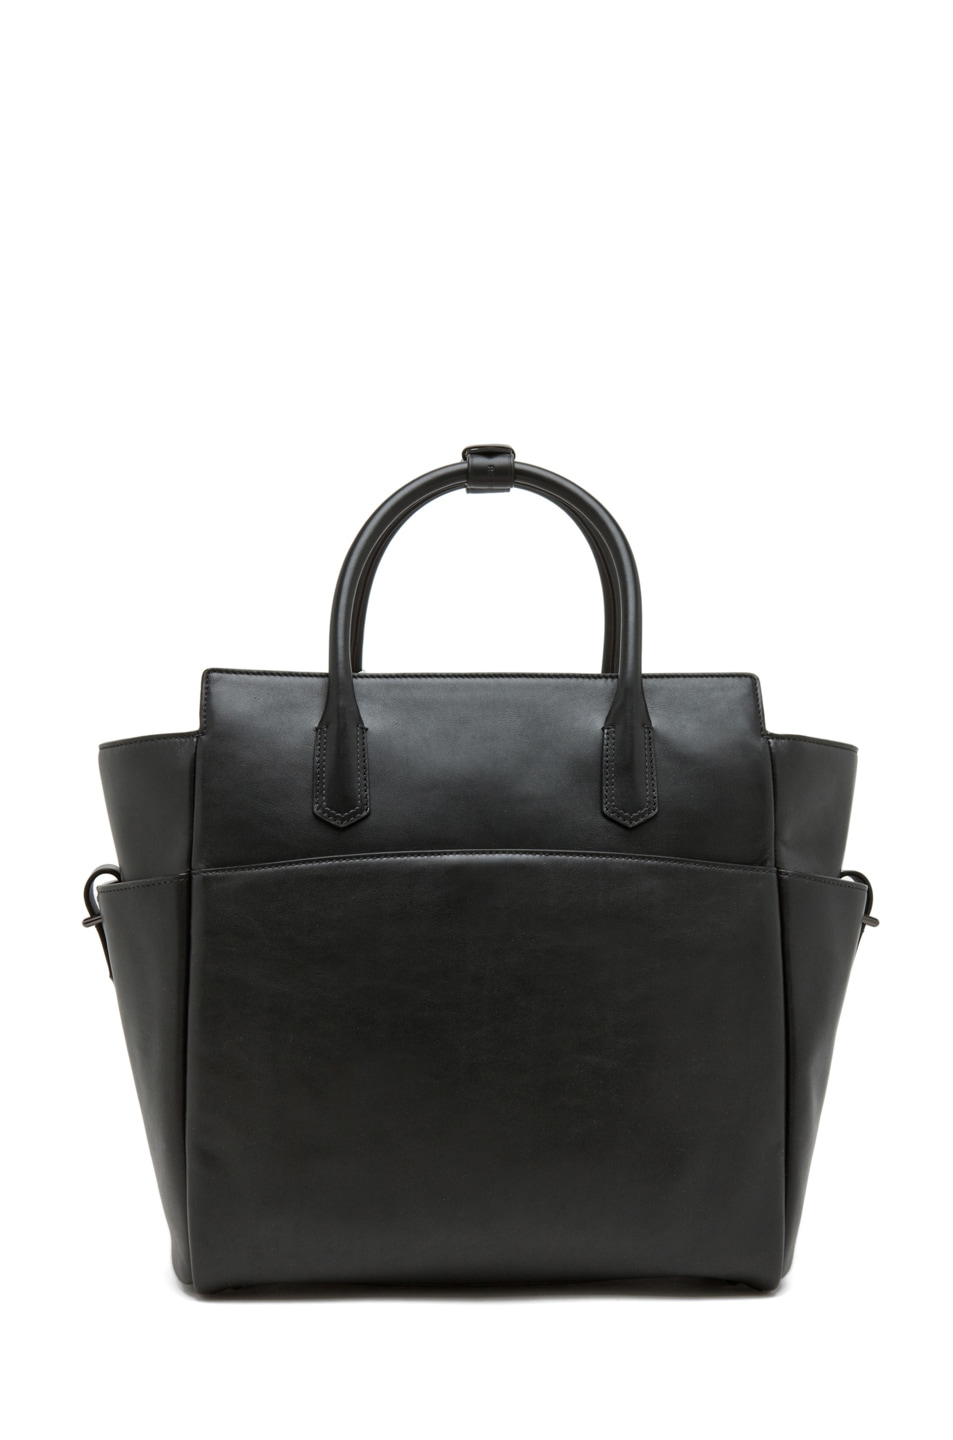 Image 2 of Reed Krakoff Atlantique in Black/White Multi